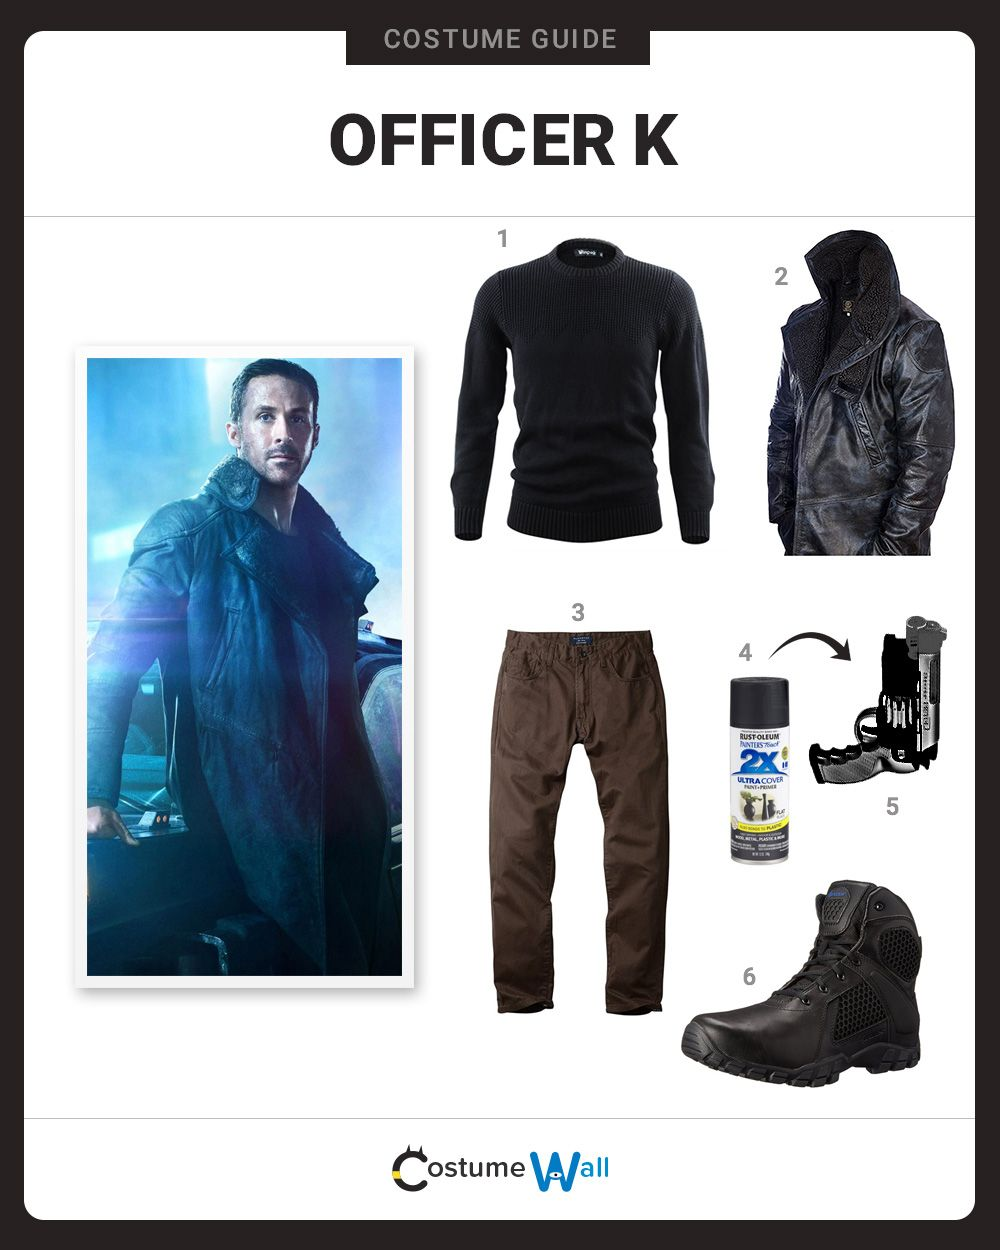 dress like officer k blade runner 2049 2017 movies and costumes